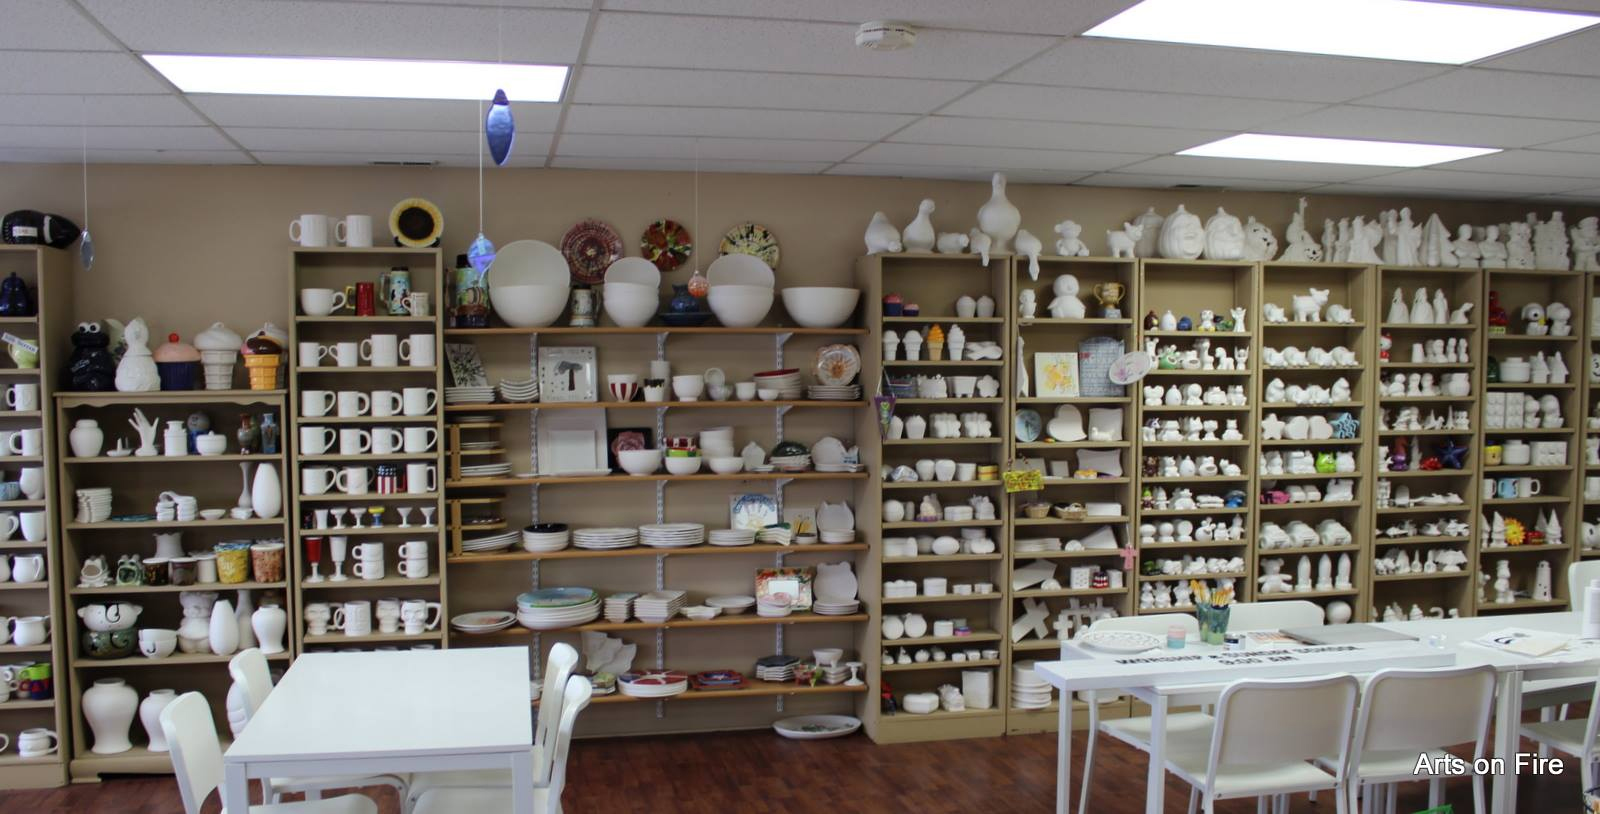 Arts on Fire Plano, IL Studio